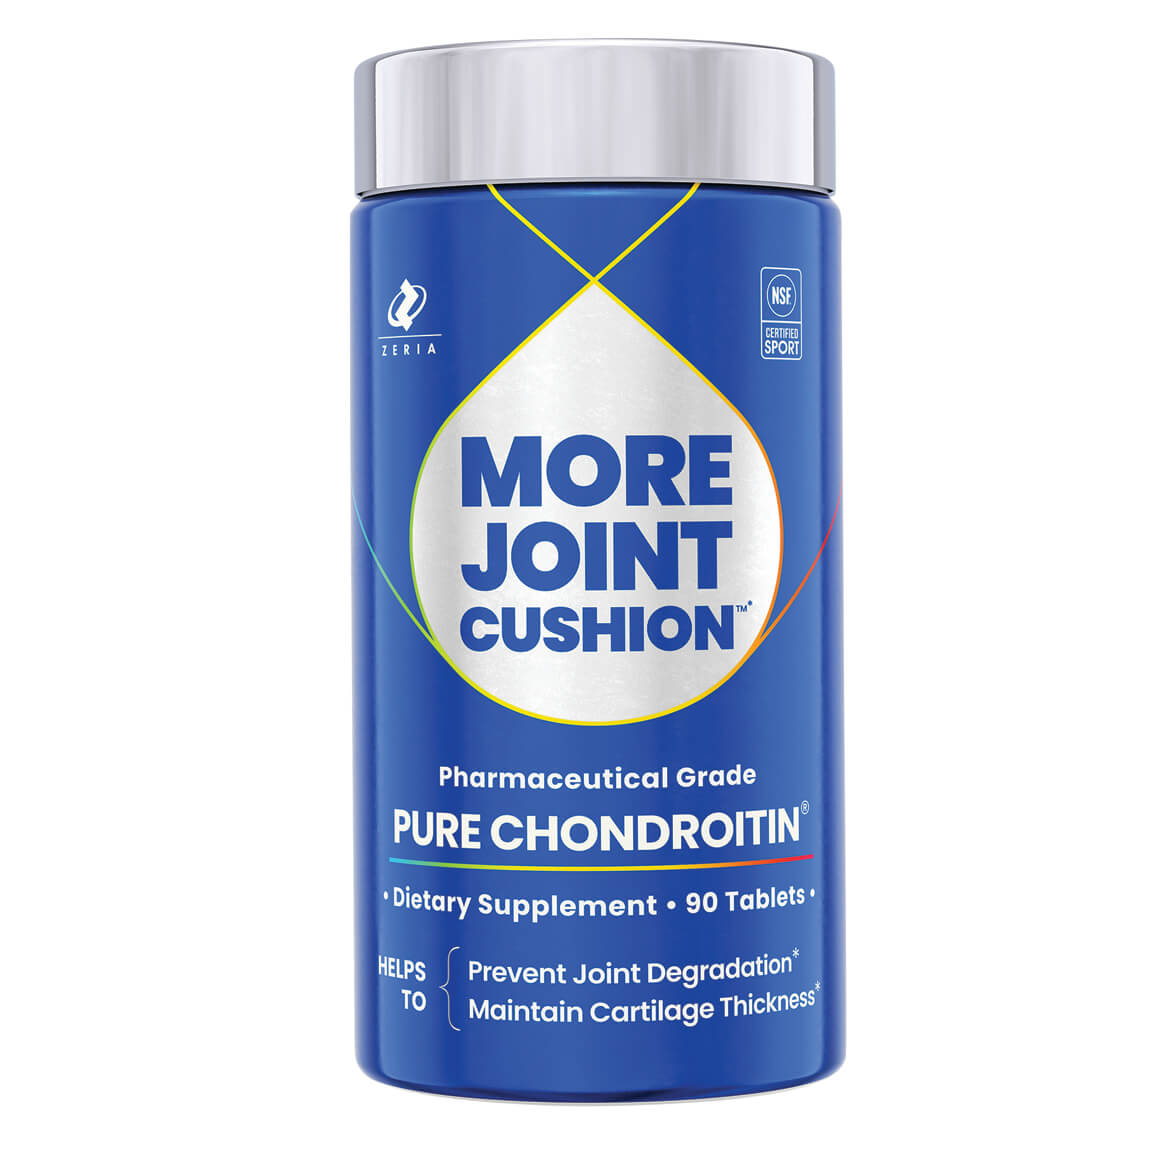 More Joint Cushion™ Pure Chondroitin® - 90 Tablets-369010